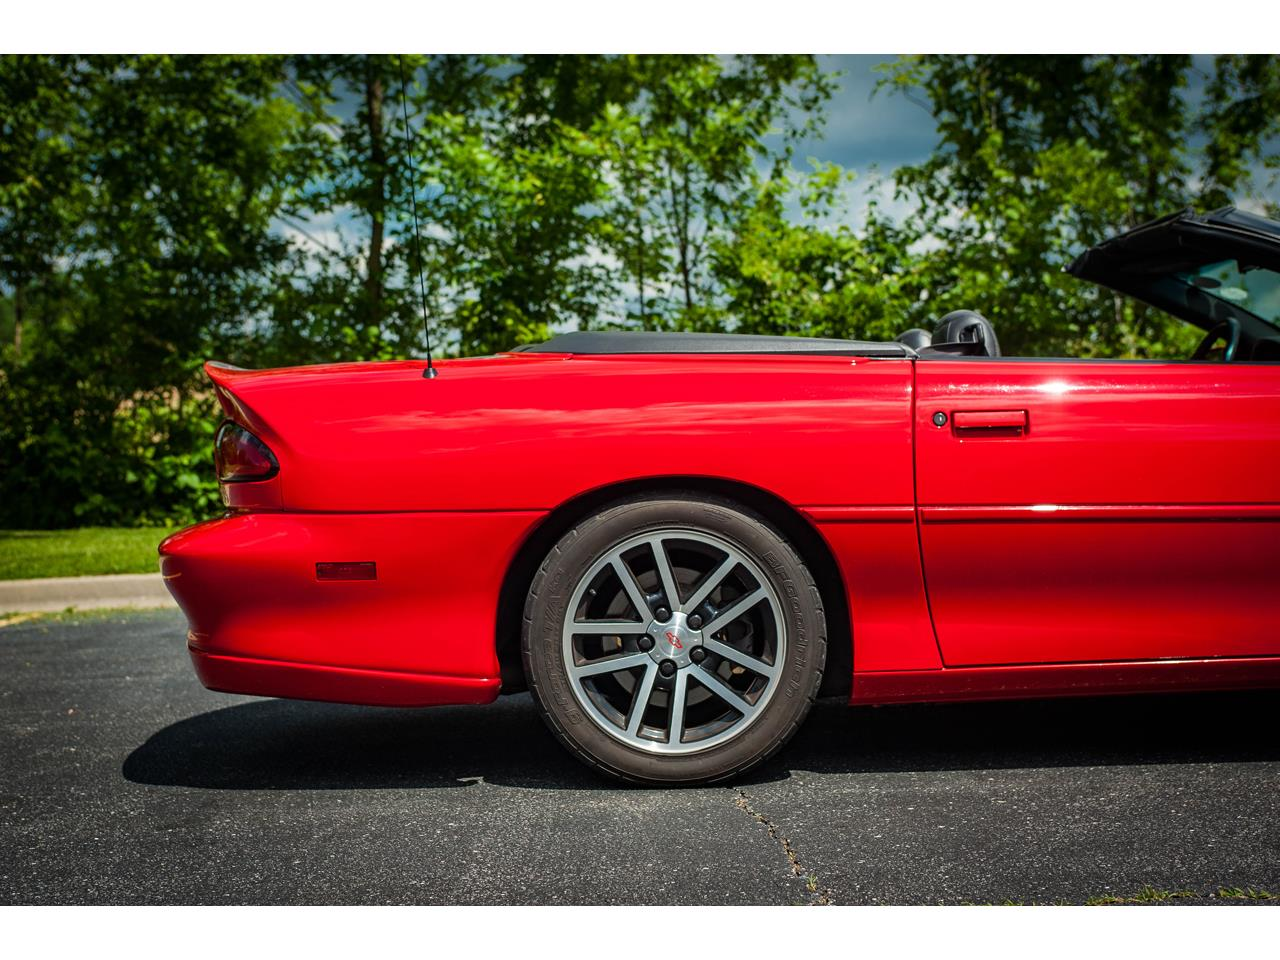 Large Picture of 2002 Camaro - $33,500.00 Offered by Gateway Classic Cars - St. Louis - QB9Z